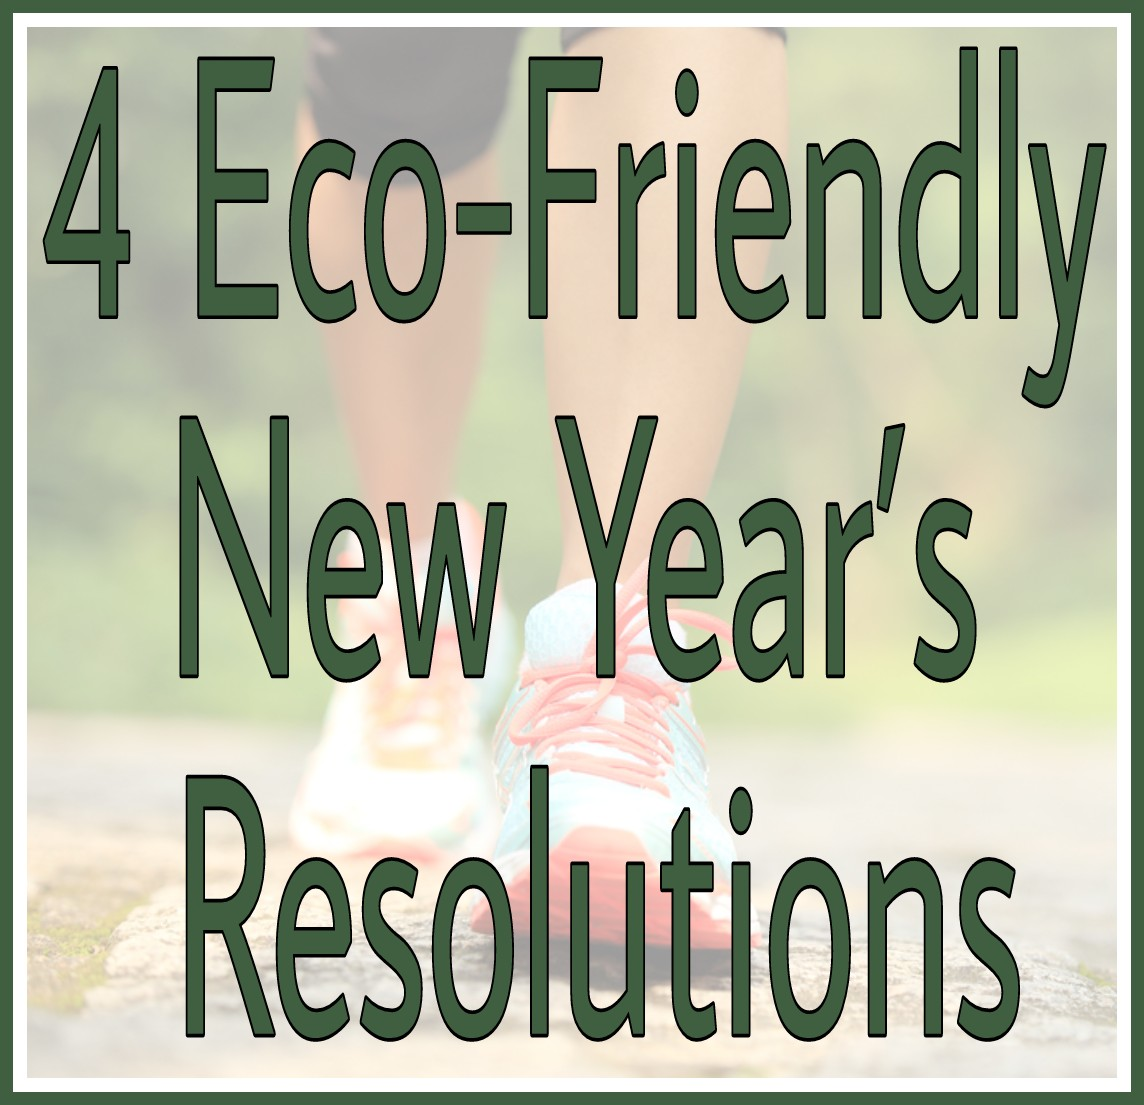 4 Eco-Friendly New Year's Resolutions